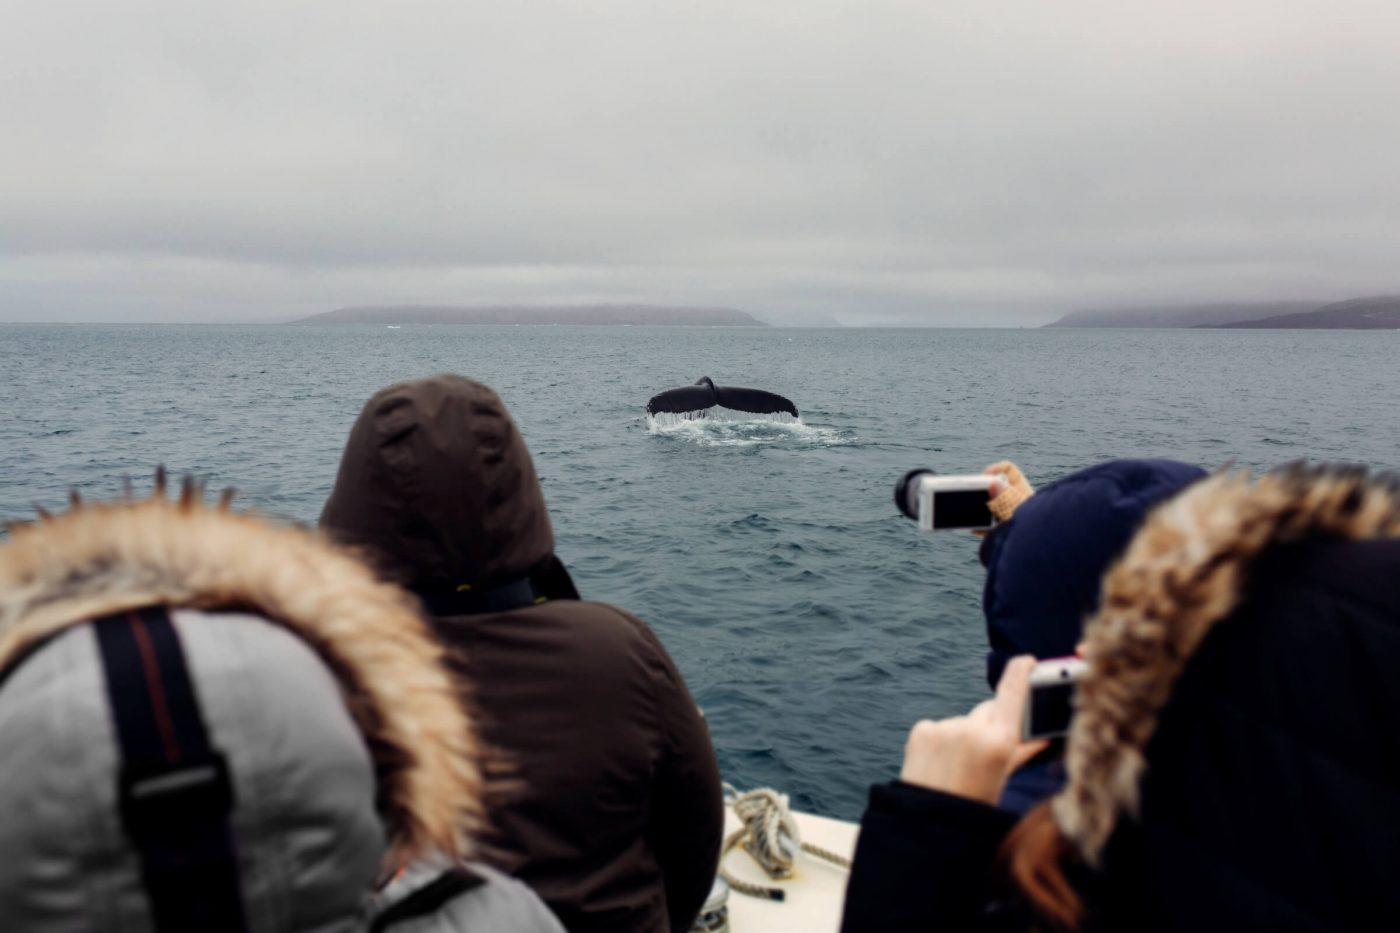 Group of tourist taking photos of a passing humpback whale. Photo by Rebecca Gustafsson